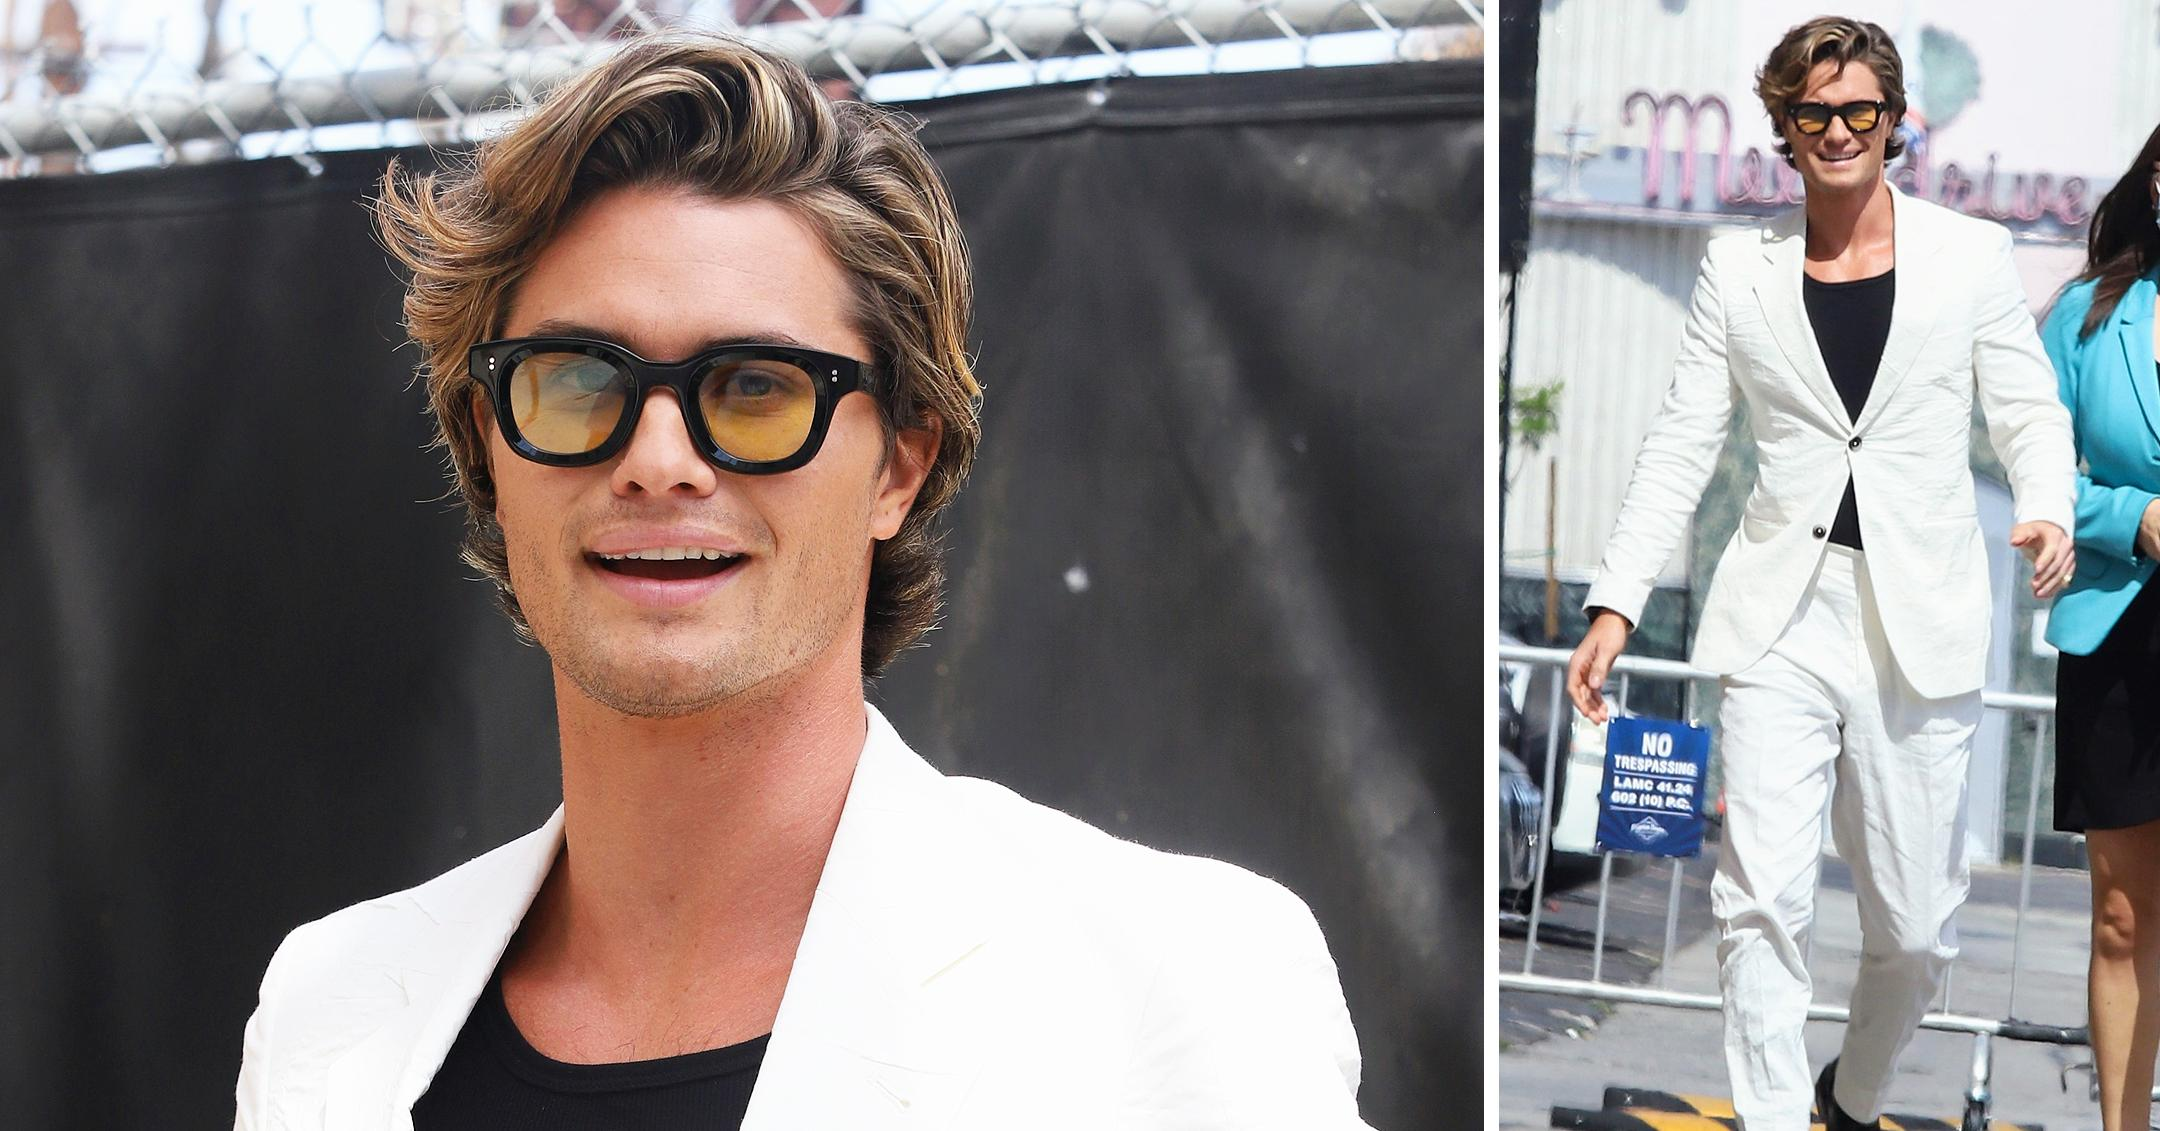 chase stokes arriving at jimmy kimmel live white suit